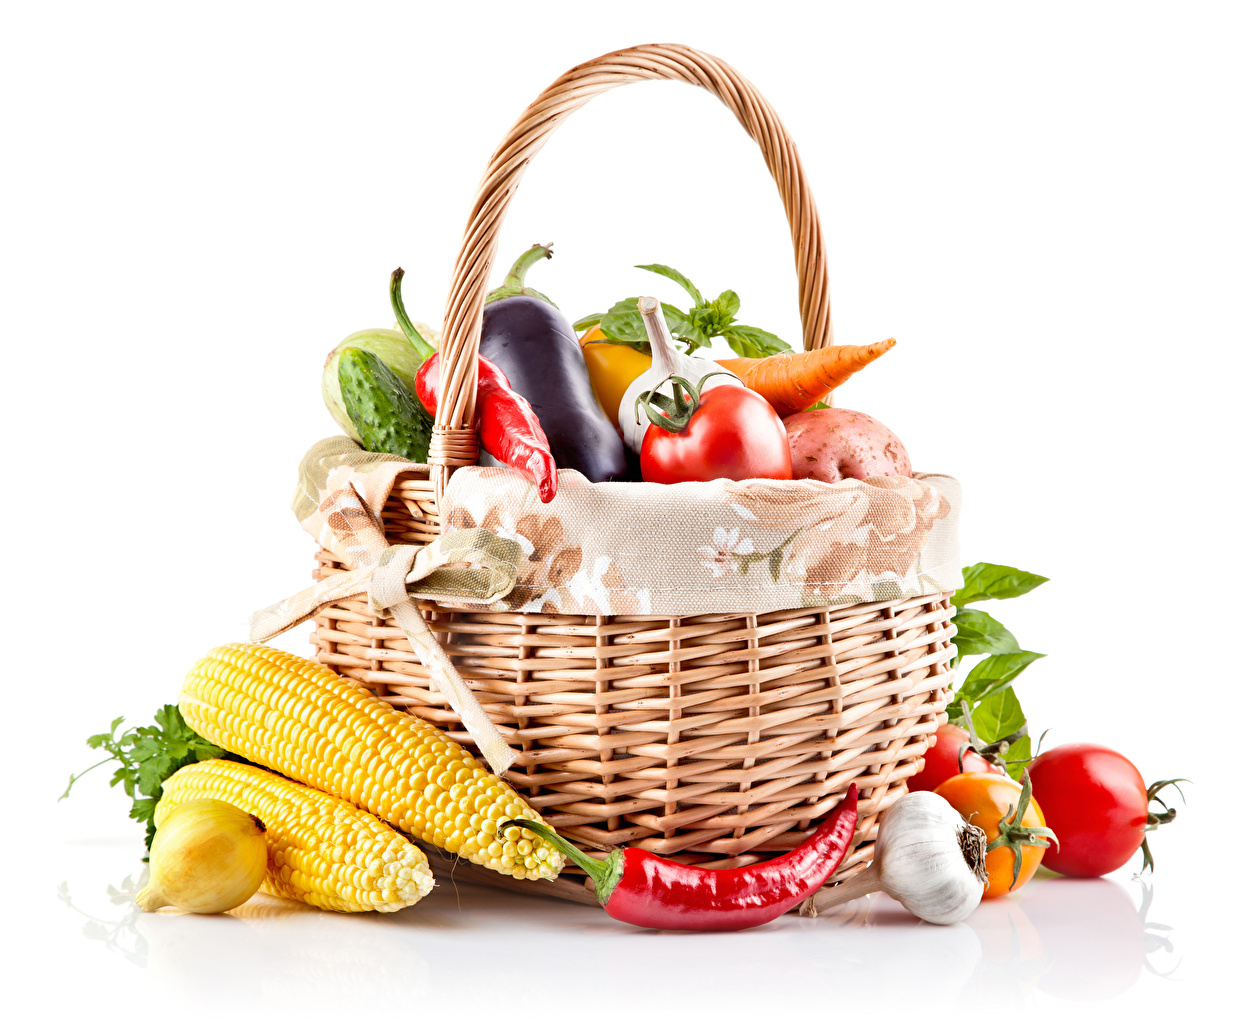 Images Corn Onion Tomatoes Chili pepper Garlic Wicker basket Food Vegetables White background Allium sativum